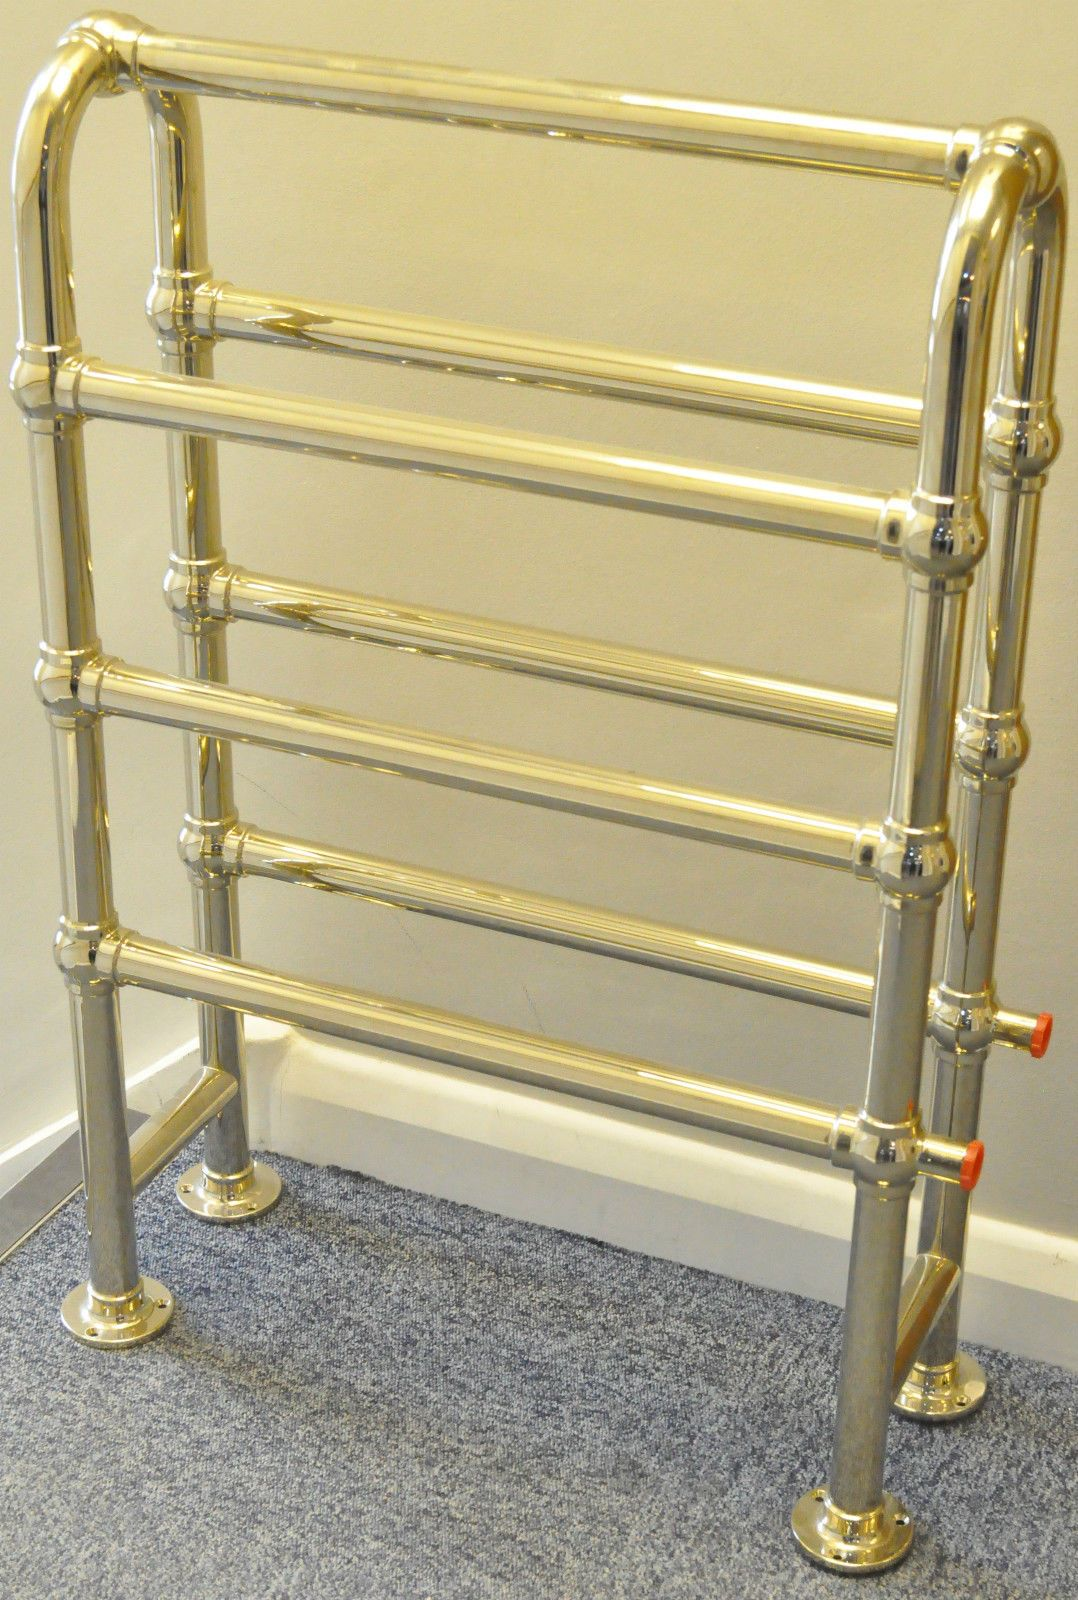 Traditional victorian ball joint towel rack rail heater radiator